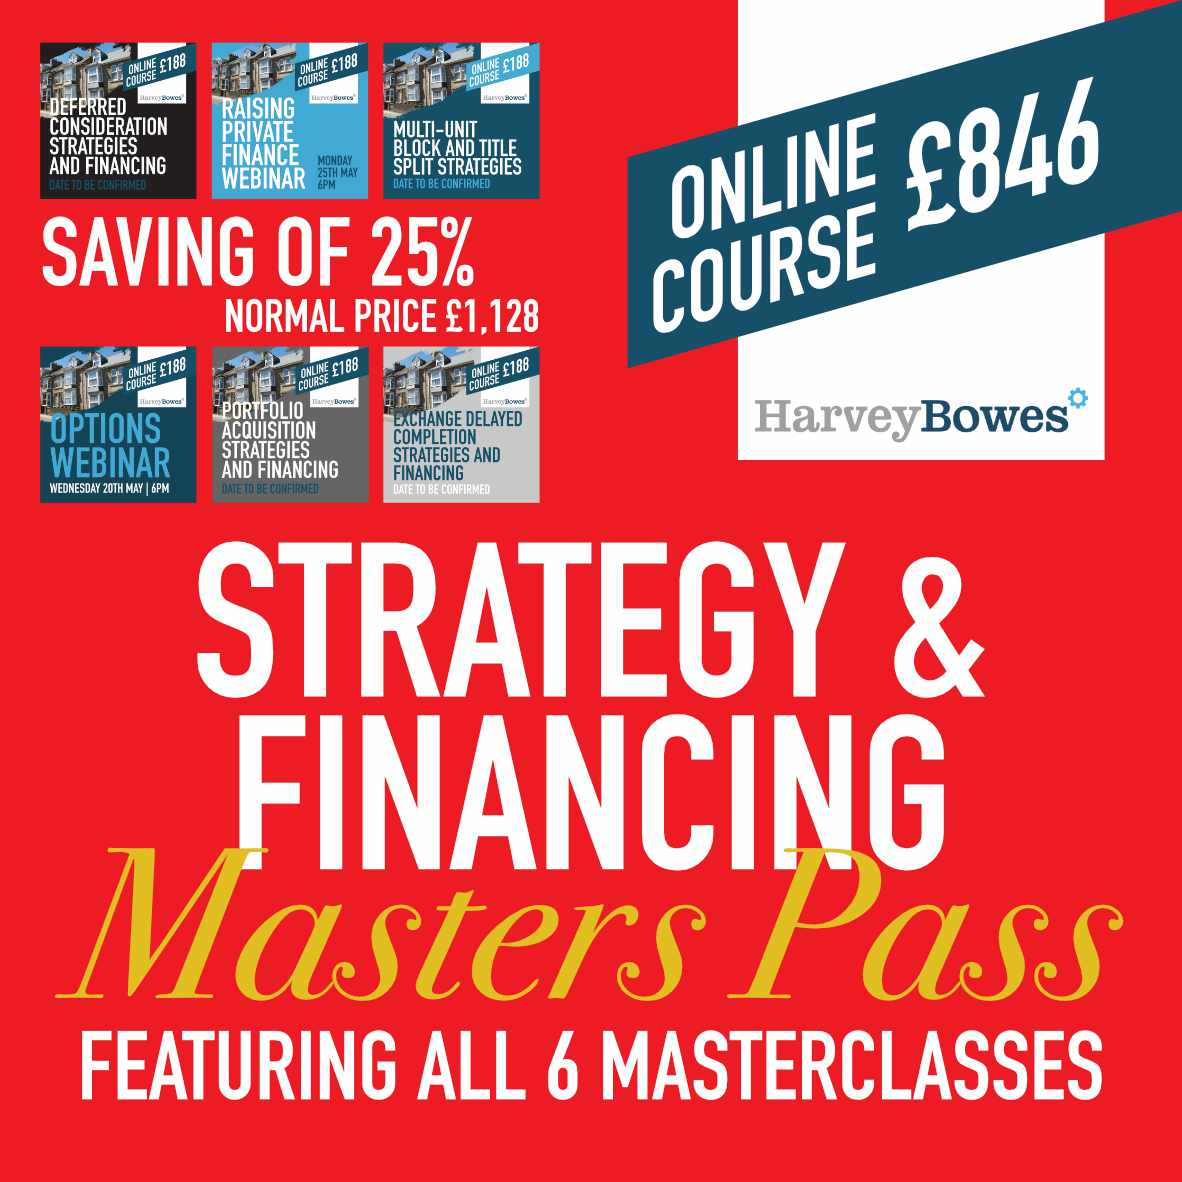 Financing & Strategies Masters Pass